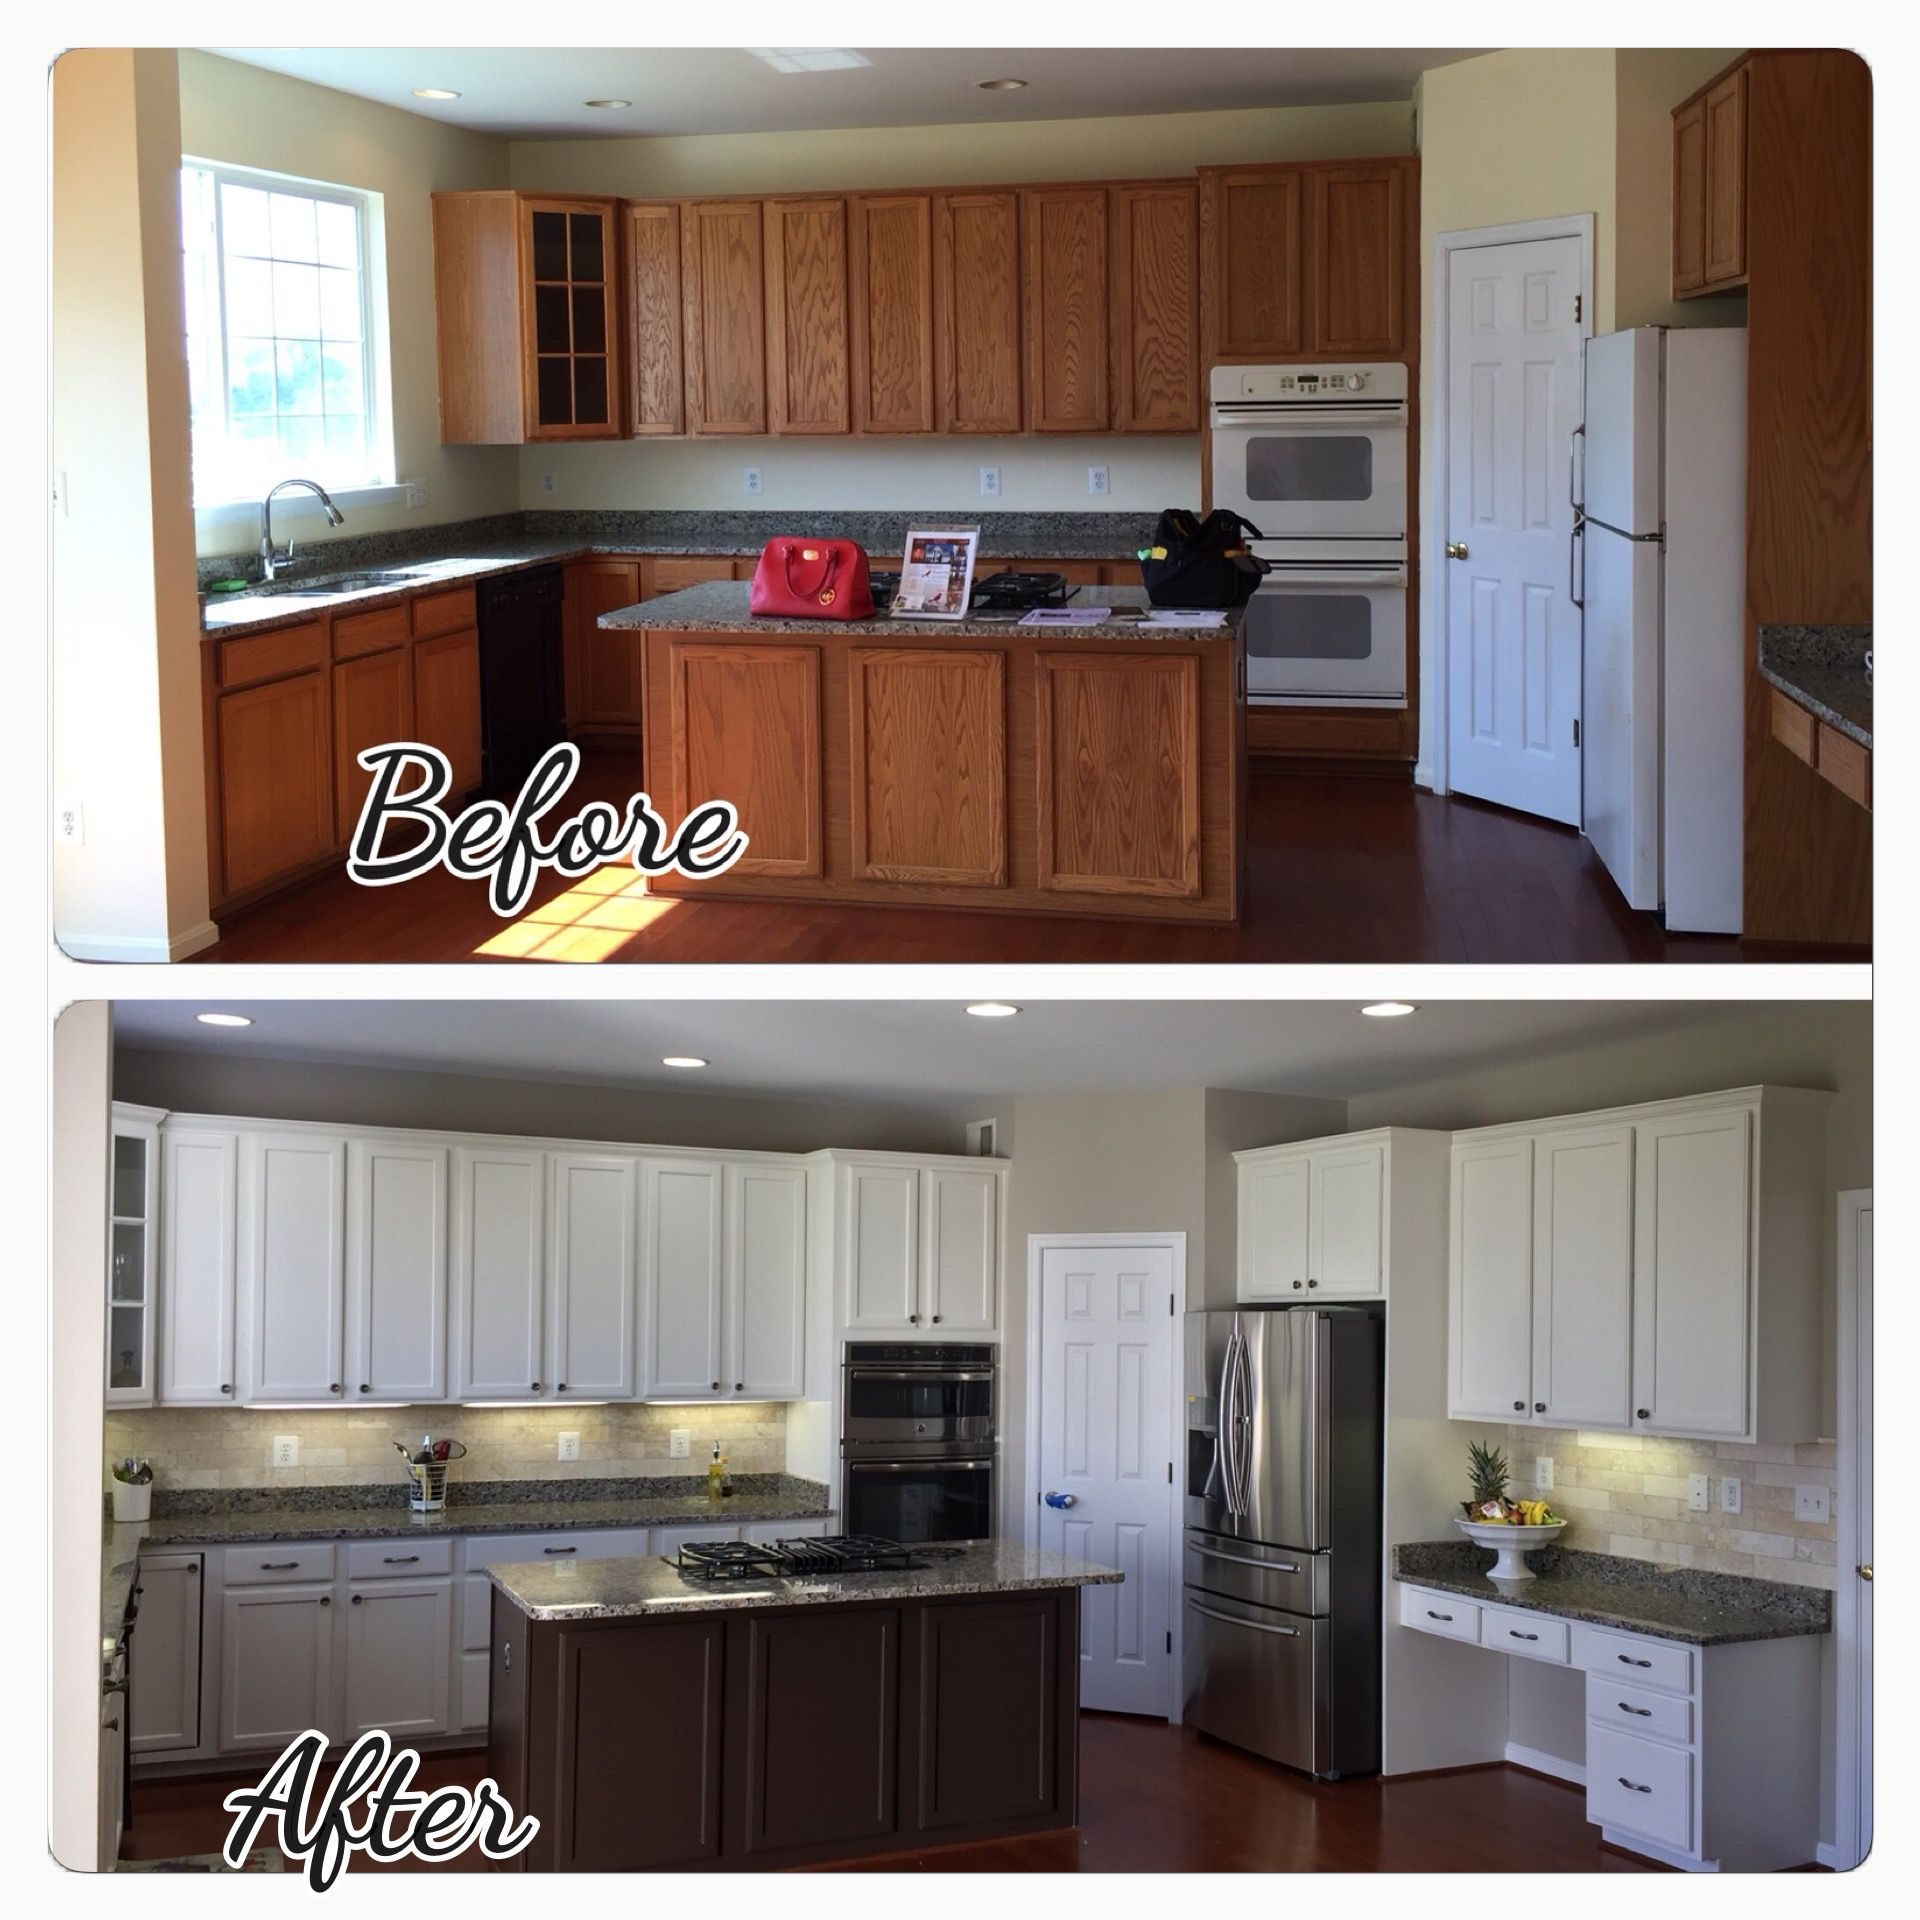 My Kitchen Renovation Cabinets Paint Bm Ivory White With Smokey Taupe On The Walls Taupe Kitchen Taupe Kitchen Cabinets Kitchen Design Plans